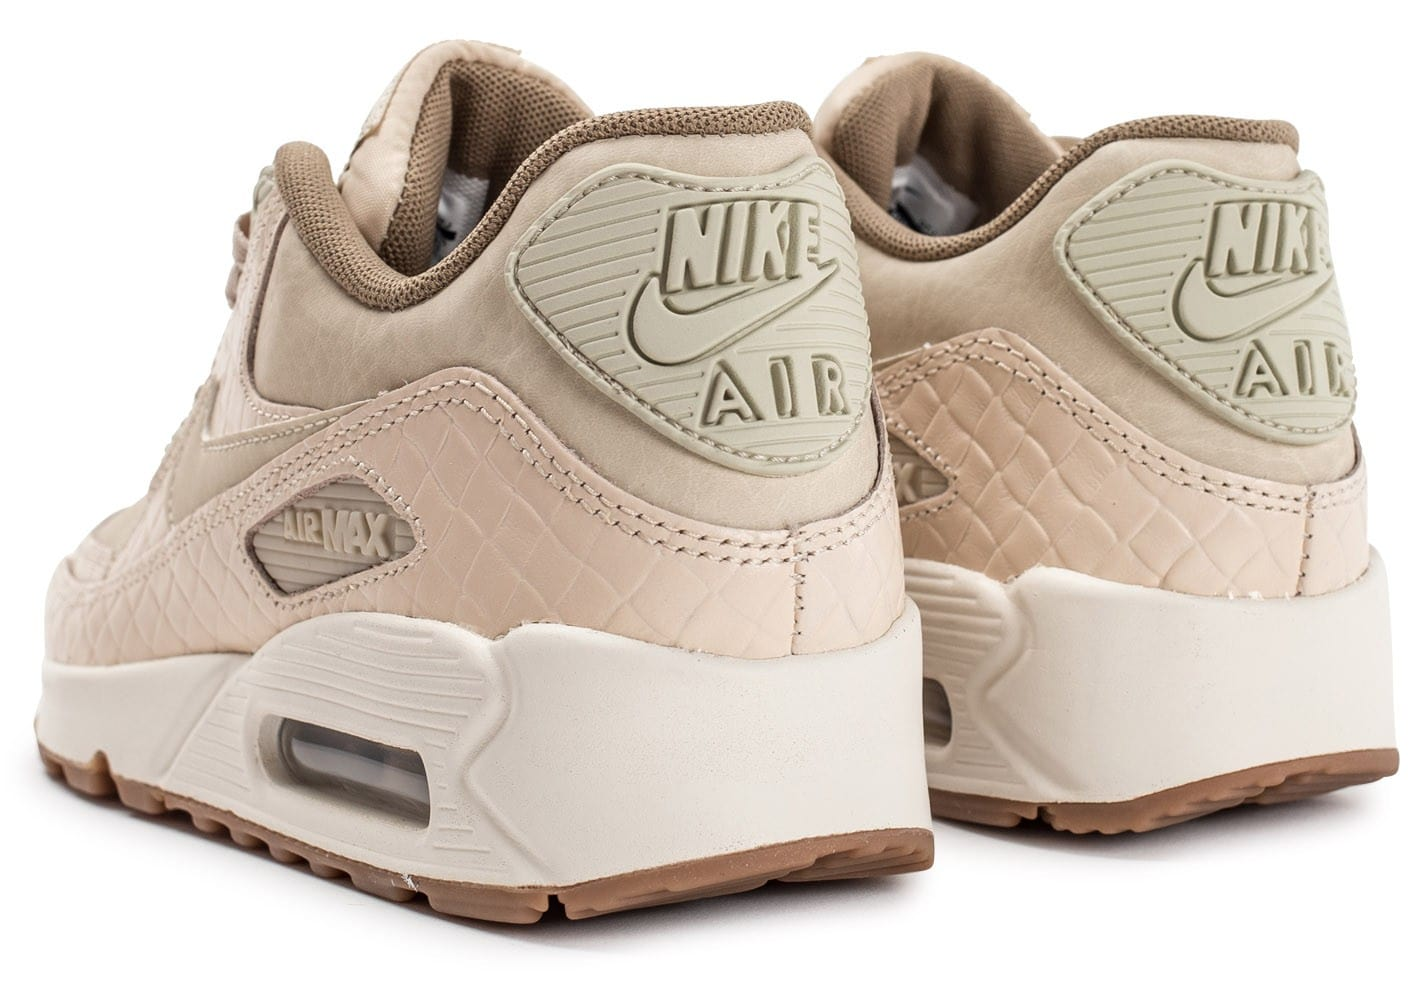 nike air max 90 premium beige chaussures femme chausport. Black Bedroom Furniture Sets. Home Design Ideas